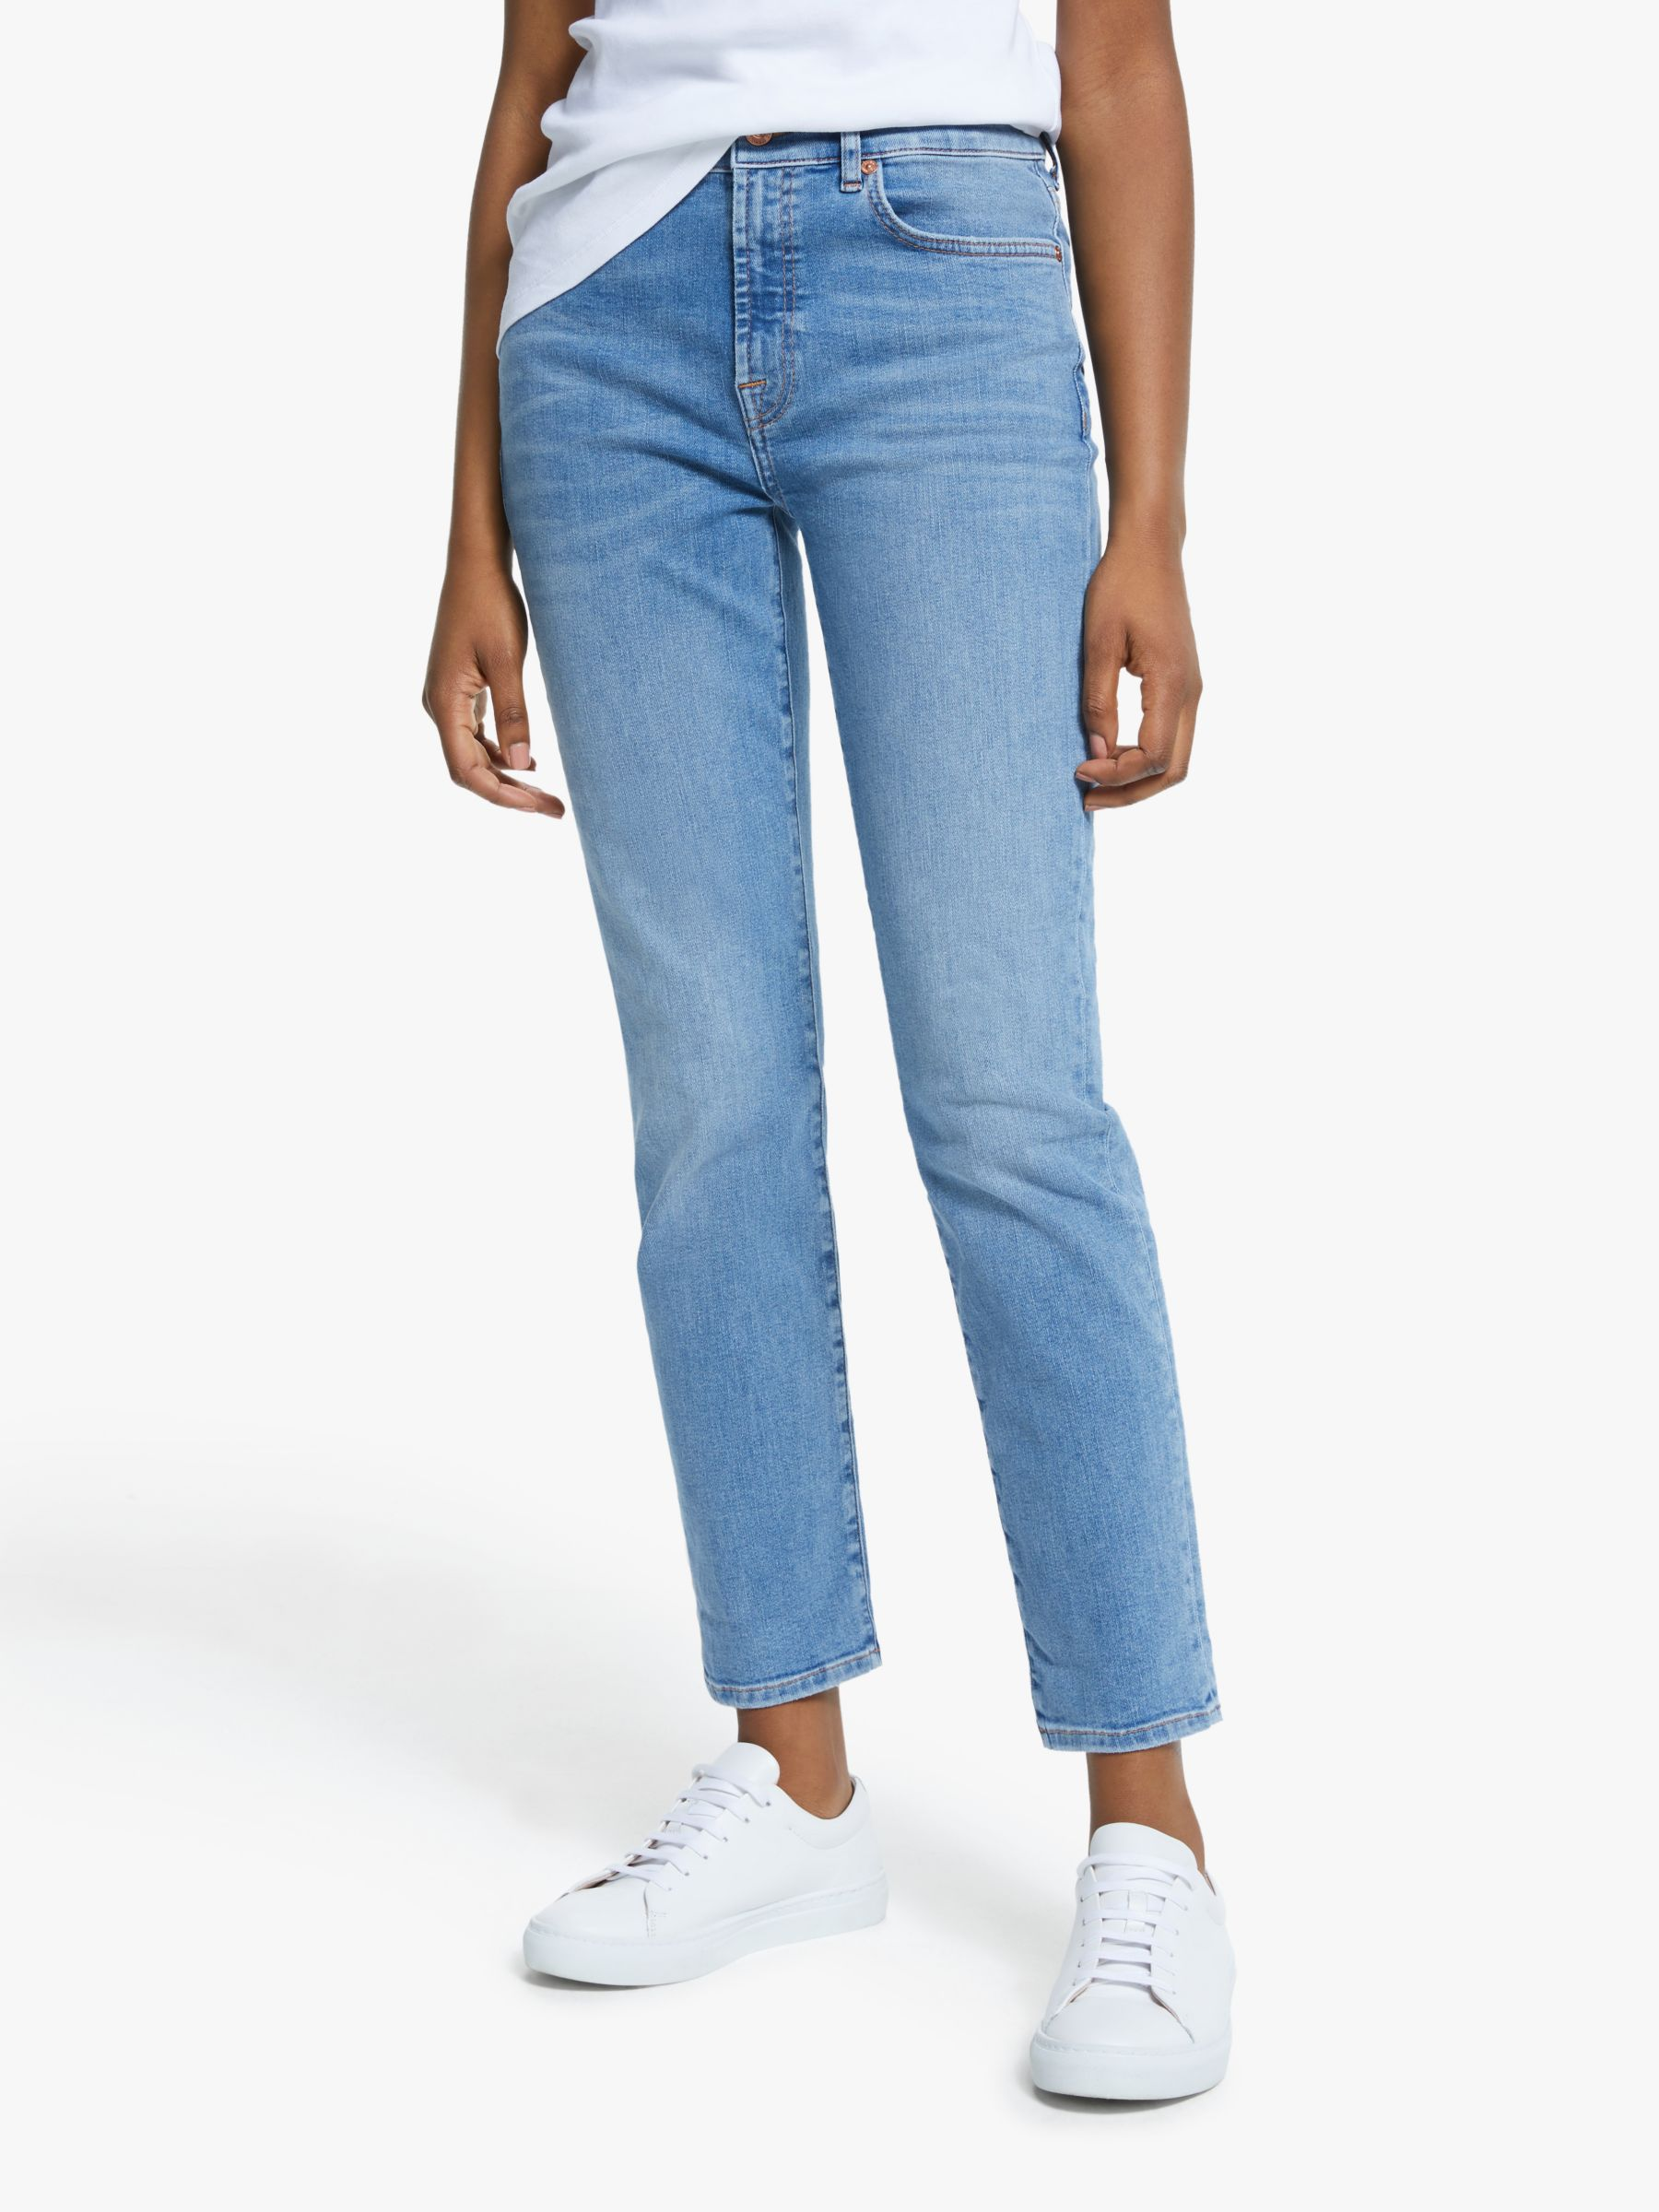 7 For All Mankind 7 For All Mankind Relaxed Skinny Slim Illusion Jeans, Departed Light Blue